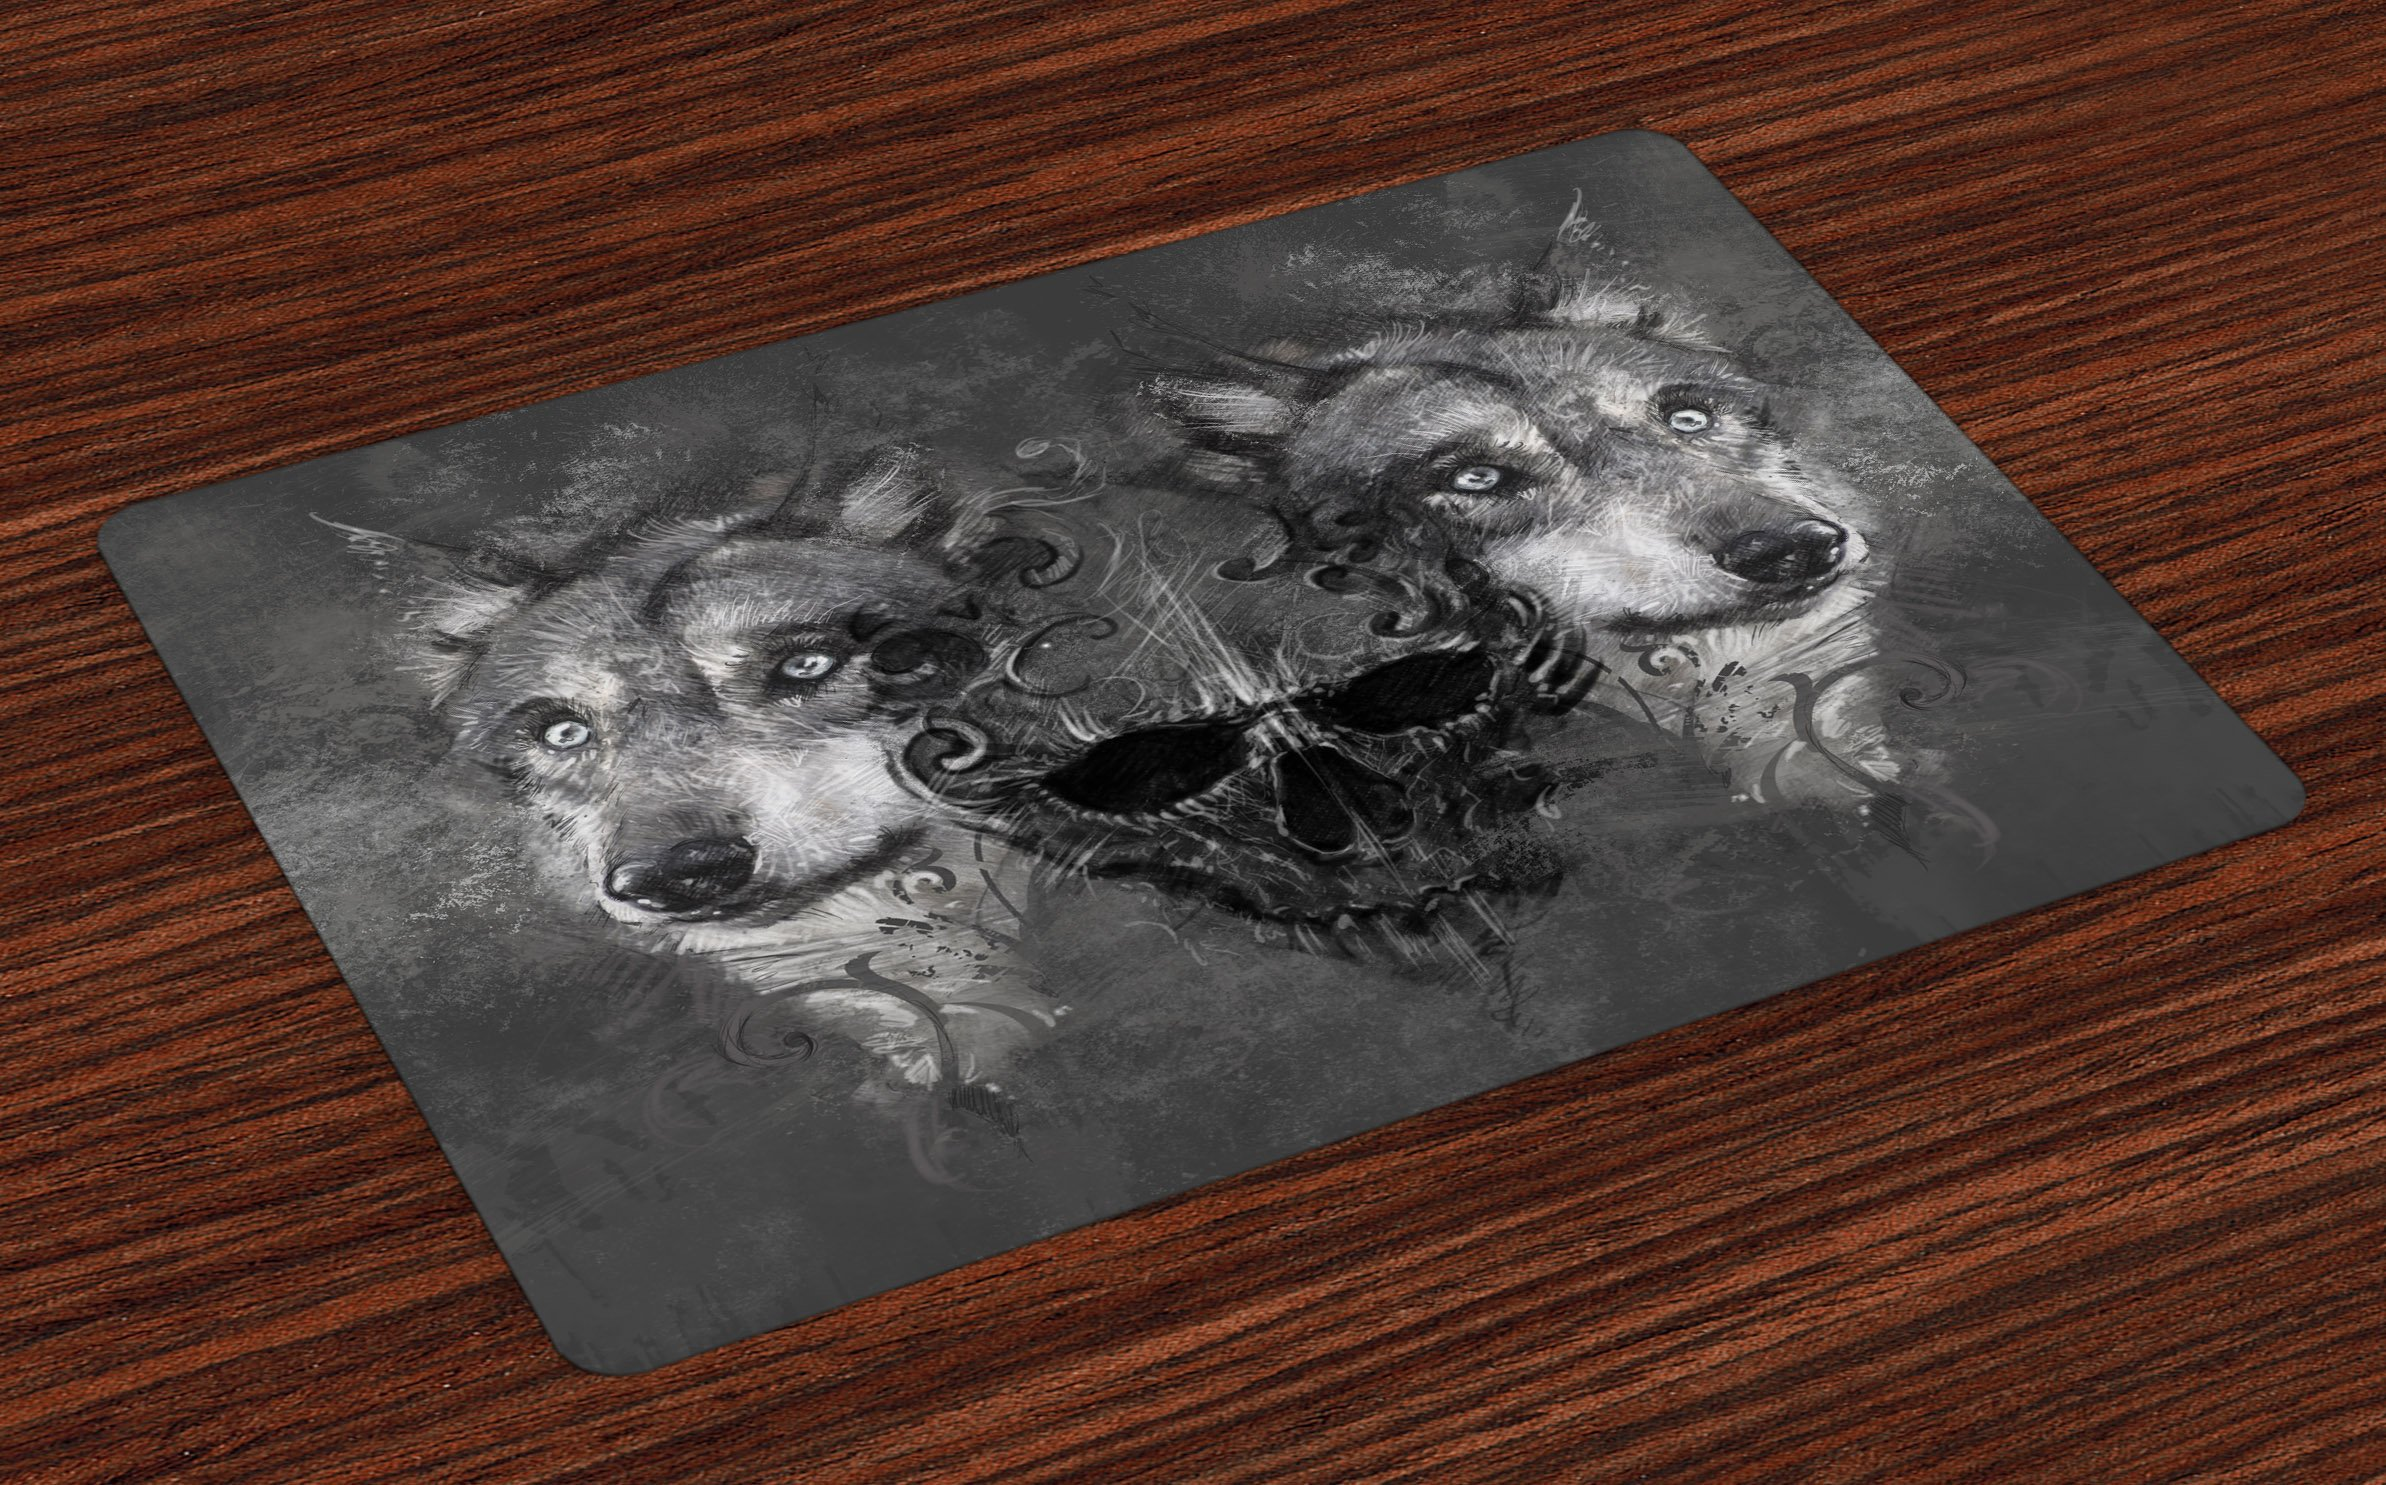 Lunarable Wolf Place Mats Set of 4, Abstract Skull Figure Between Two Canine Animals Wildlife Grunge Tattoo Like Artwork, Washable Fabric Placemats for Dining Room Kitchen Table Decoration, Grey Black